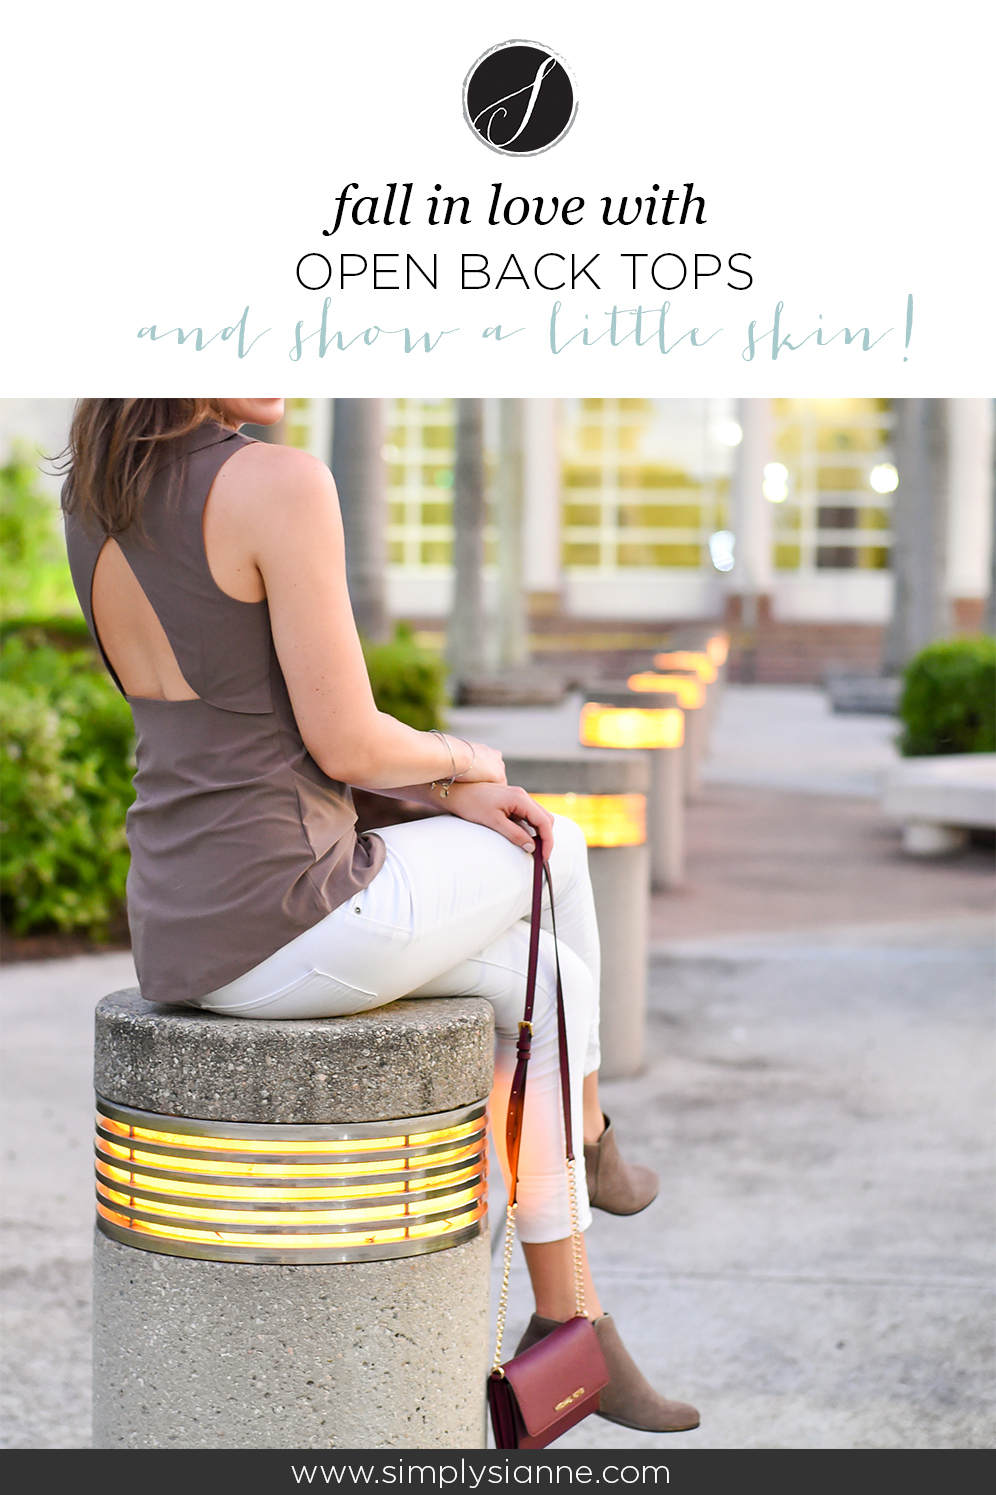 open-back-top-pinterest-image